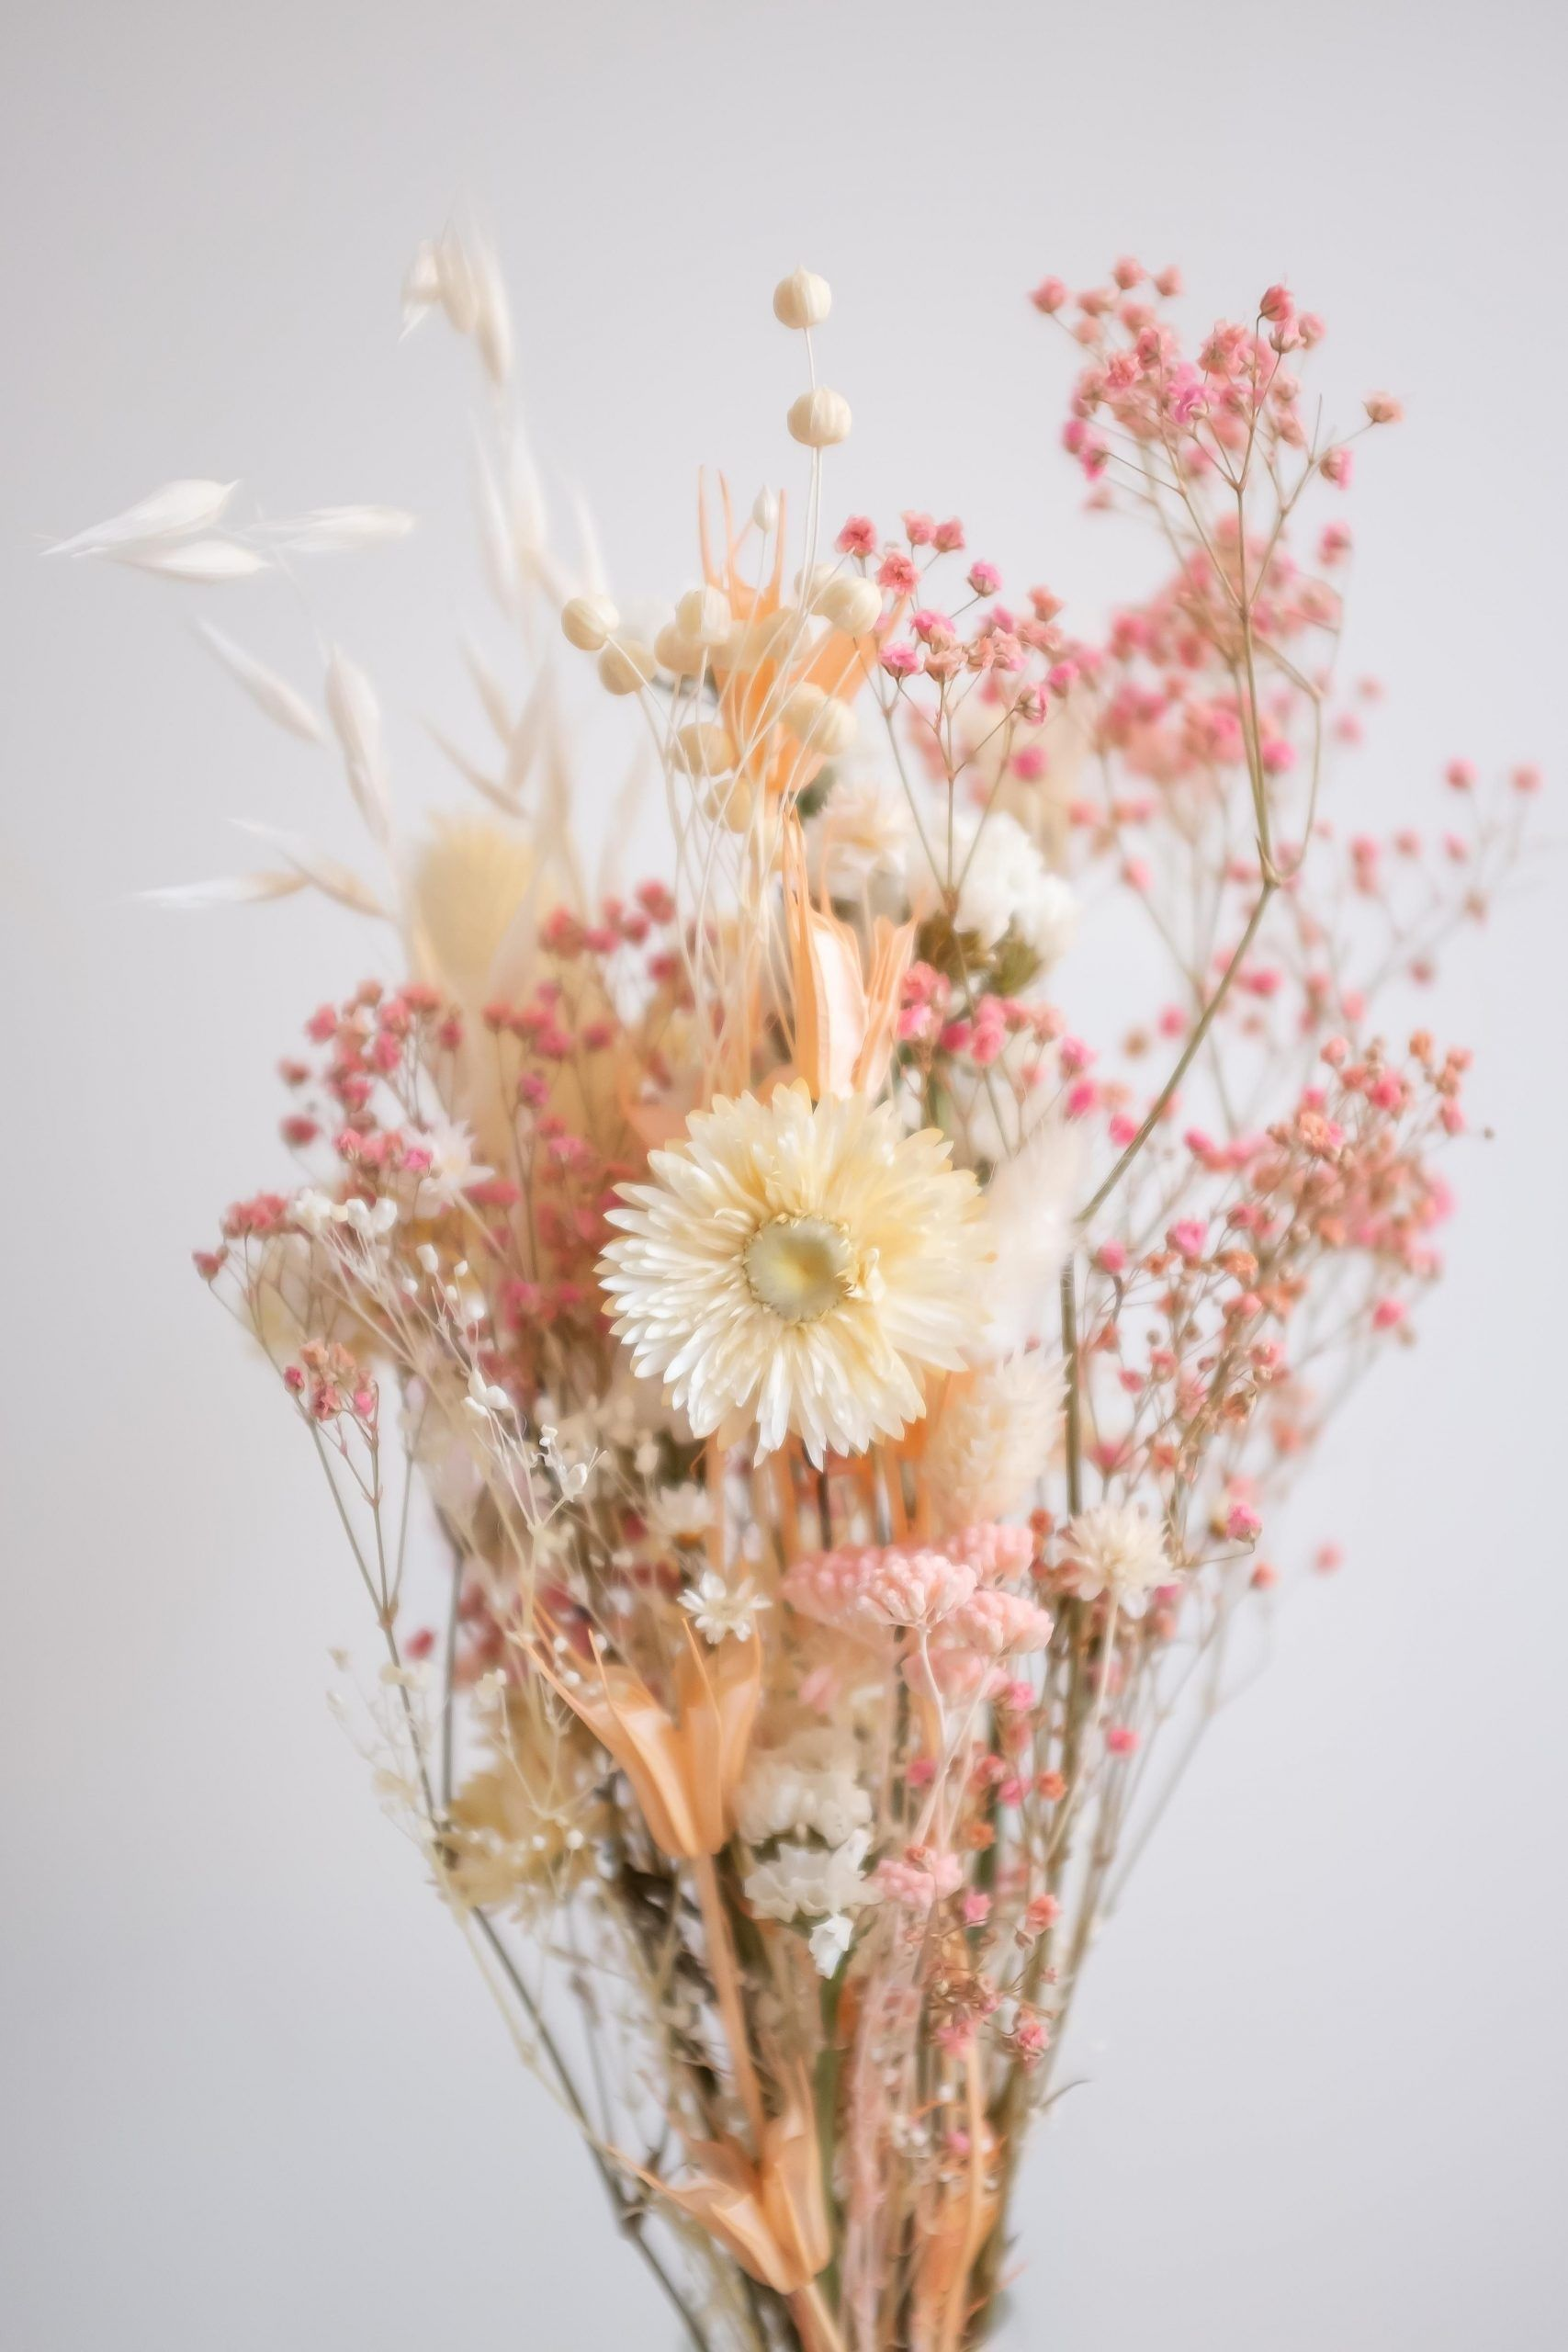 Bouquet Of Dried Flowers Bouquet Dried Flowers Bouquet Dried Flowers Flowersbouquet In 2020 Dried Flower Arrangements Dried Flowers Dried Flower Bouquet